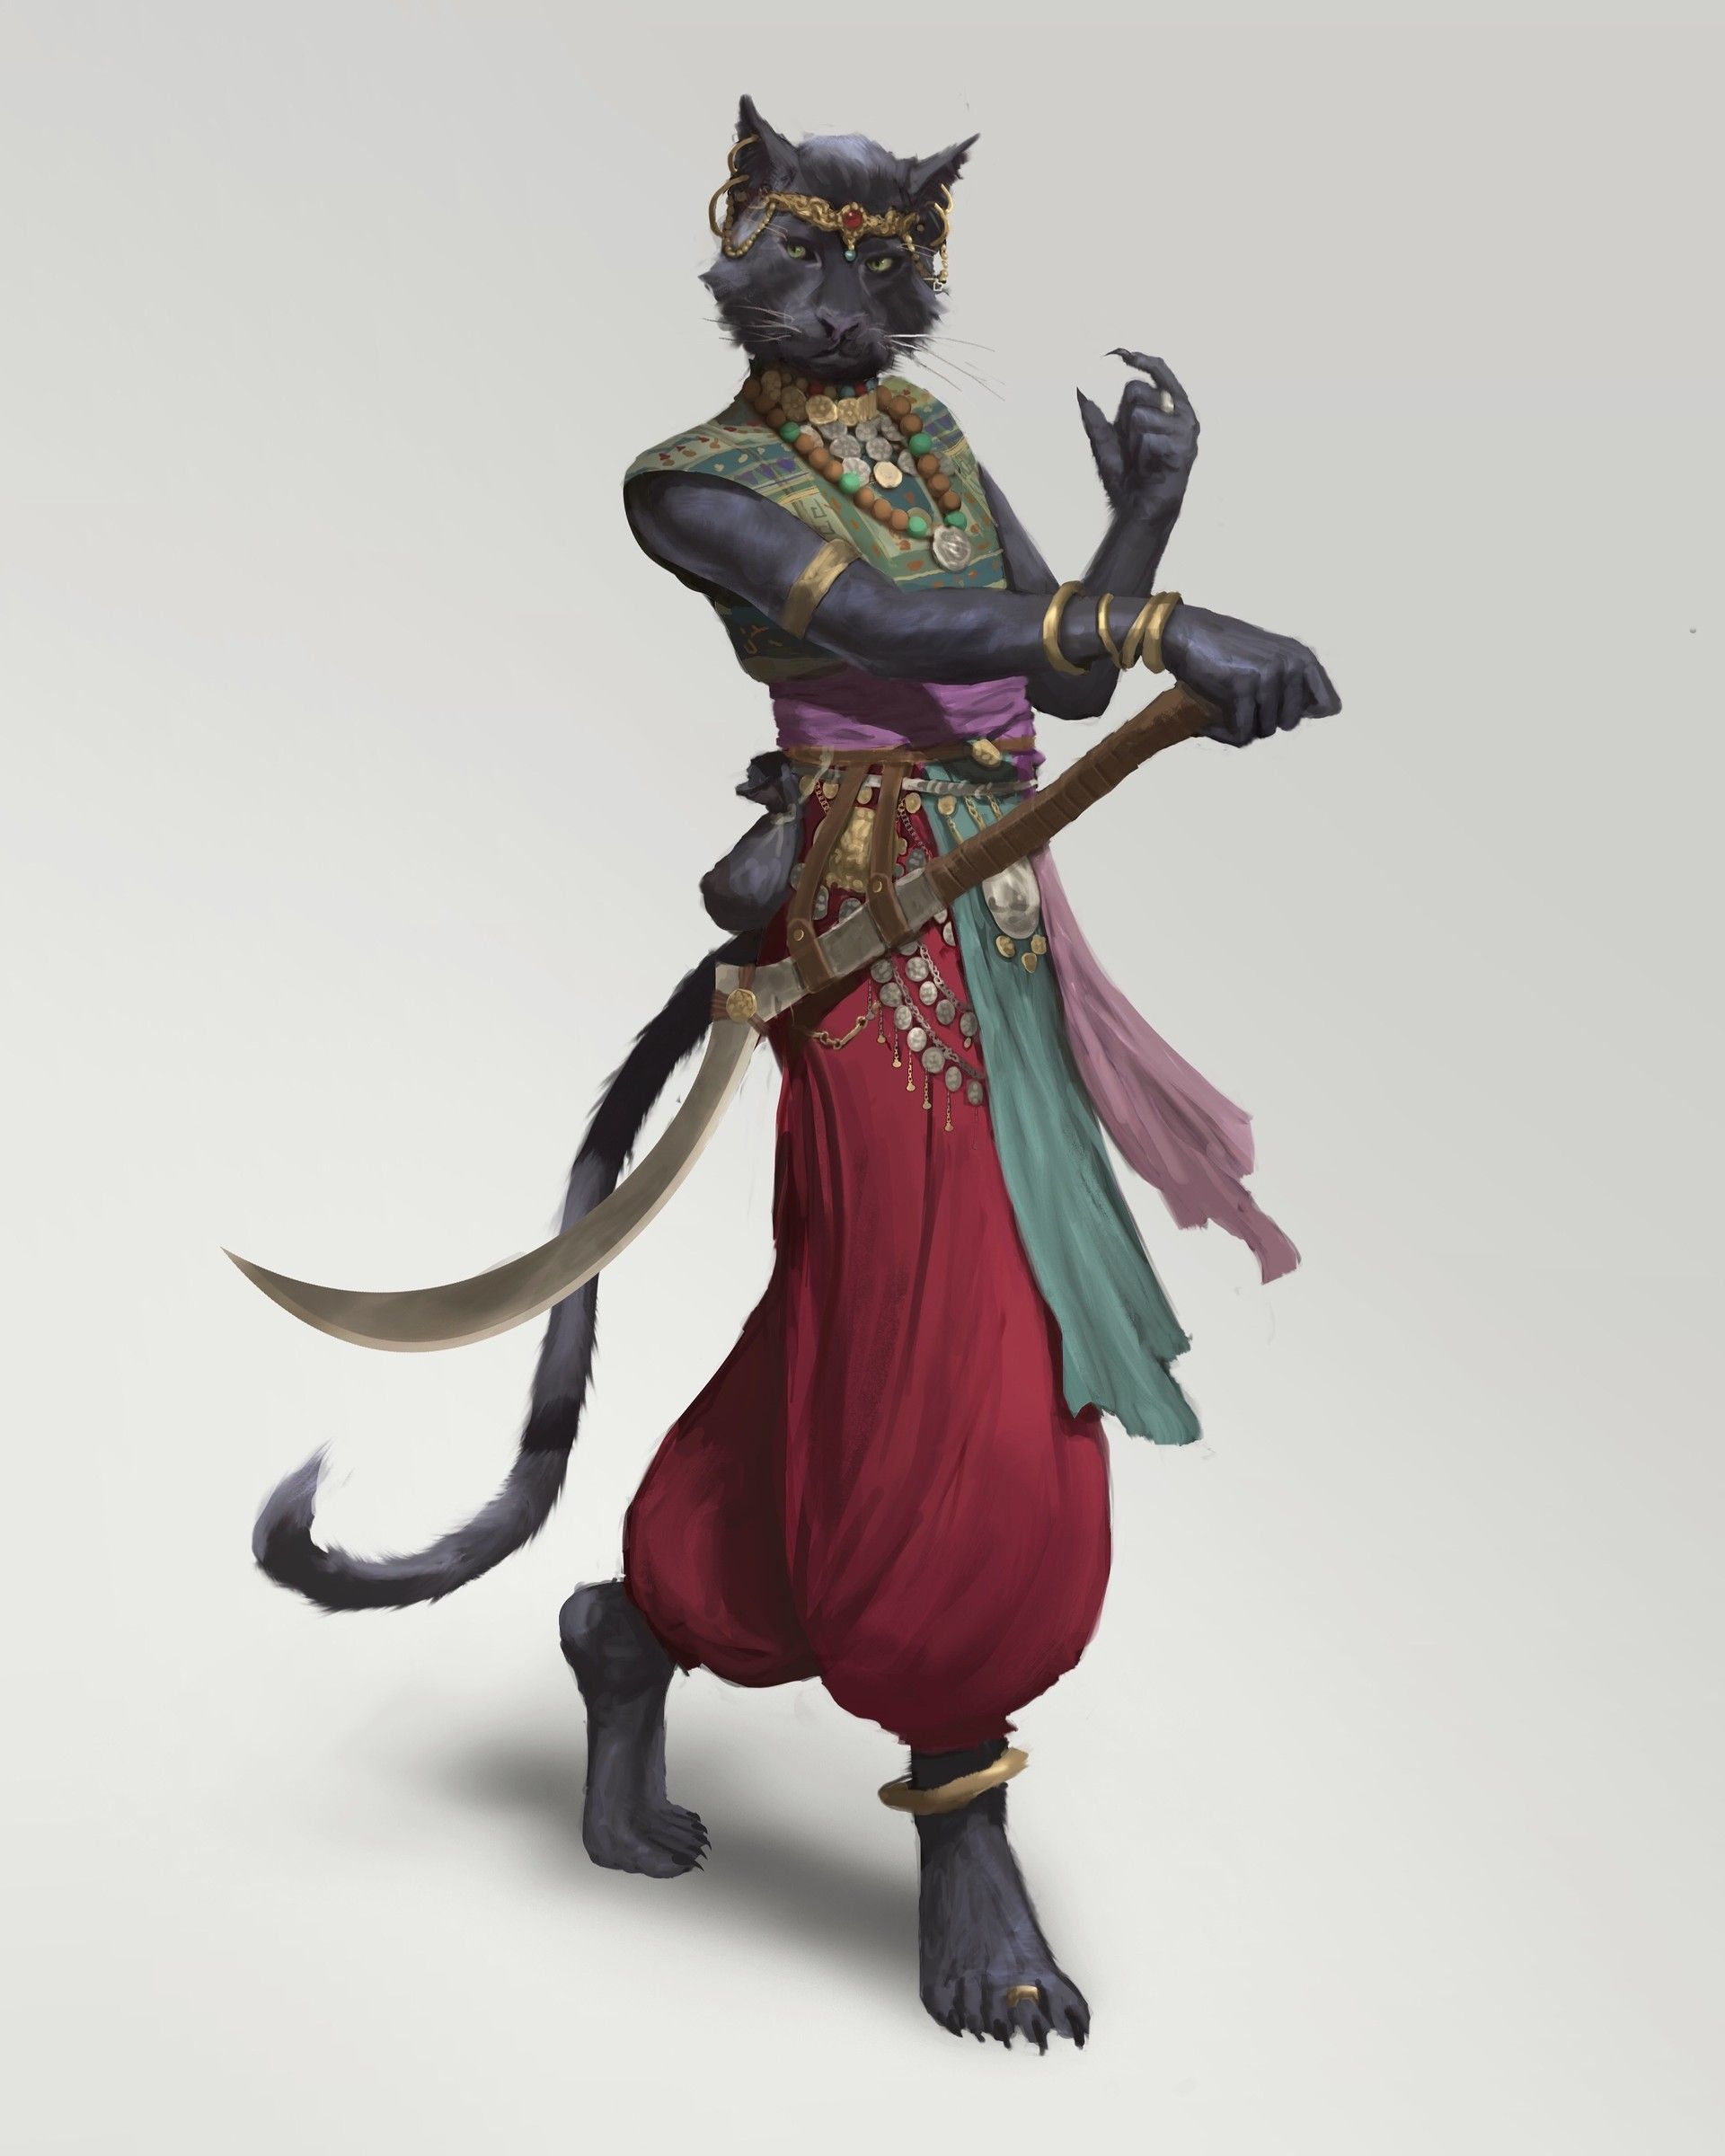 Tabaxi Monk Dungeons And Dragons Characters Dnd Characters Character Art Stone, tabaxi monk of the way of the garnet soul (renamed from the cobalt soul from critical role). dungeons and dragons characters dnd